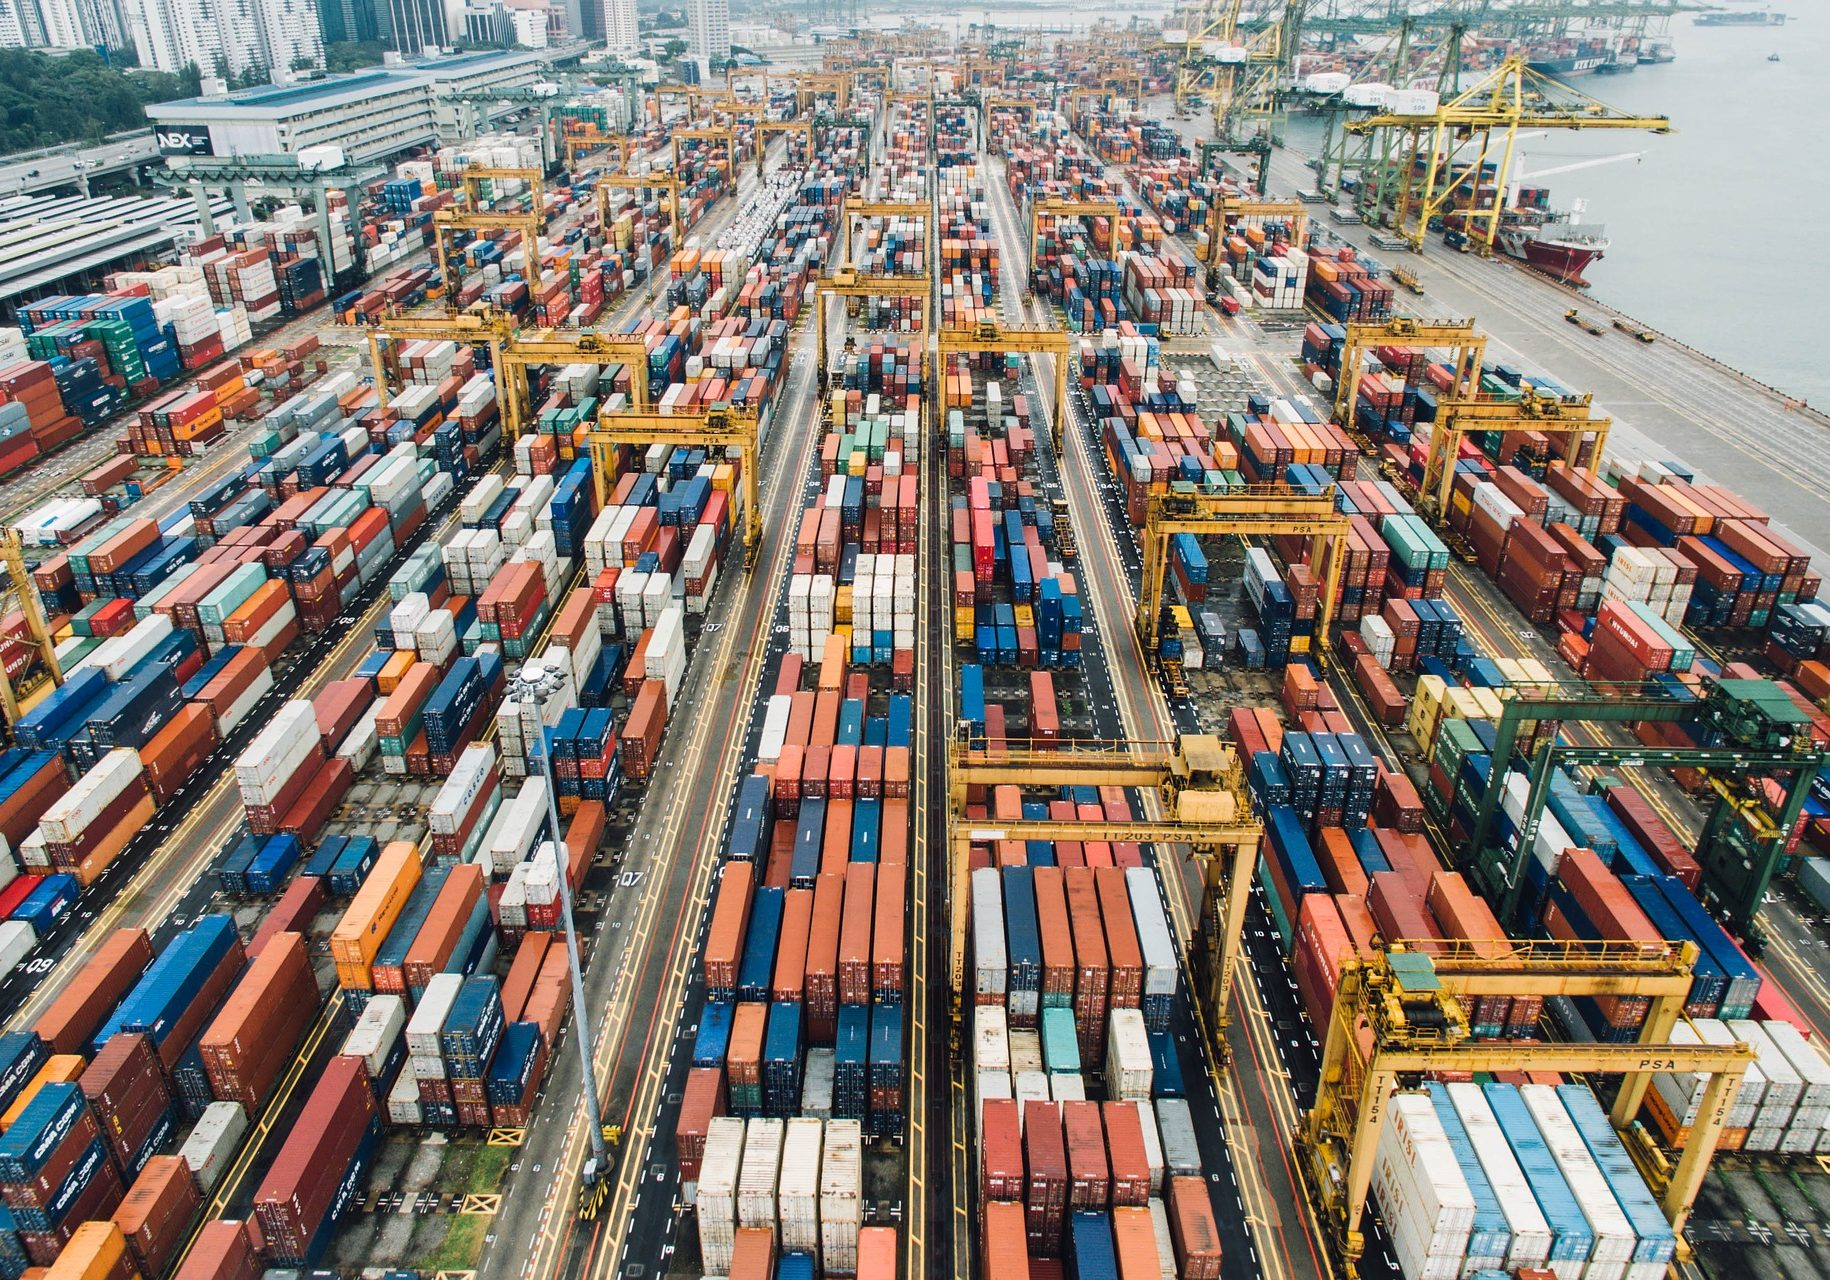 container-2568197_1920-Image by StockSnap from Pixabay